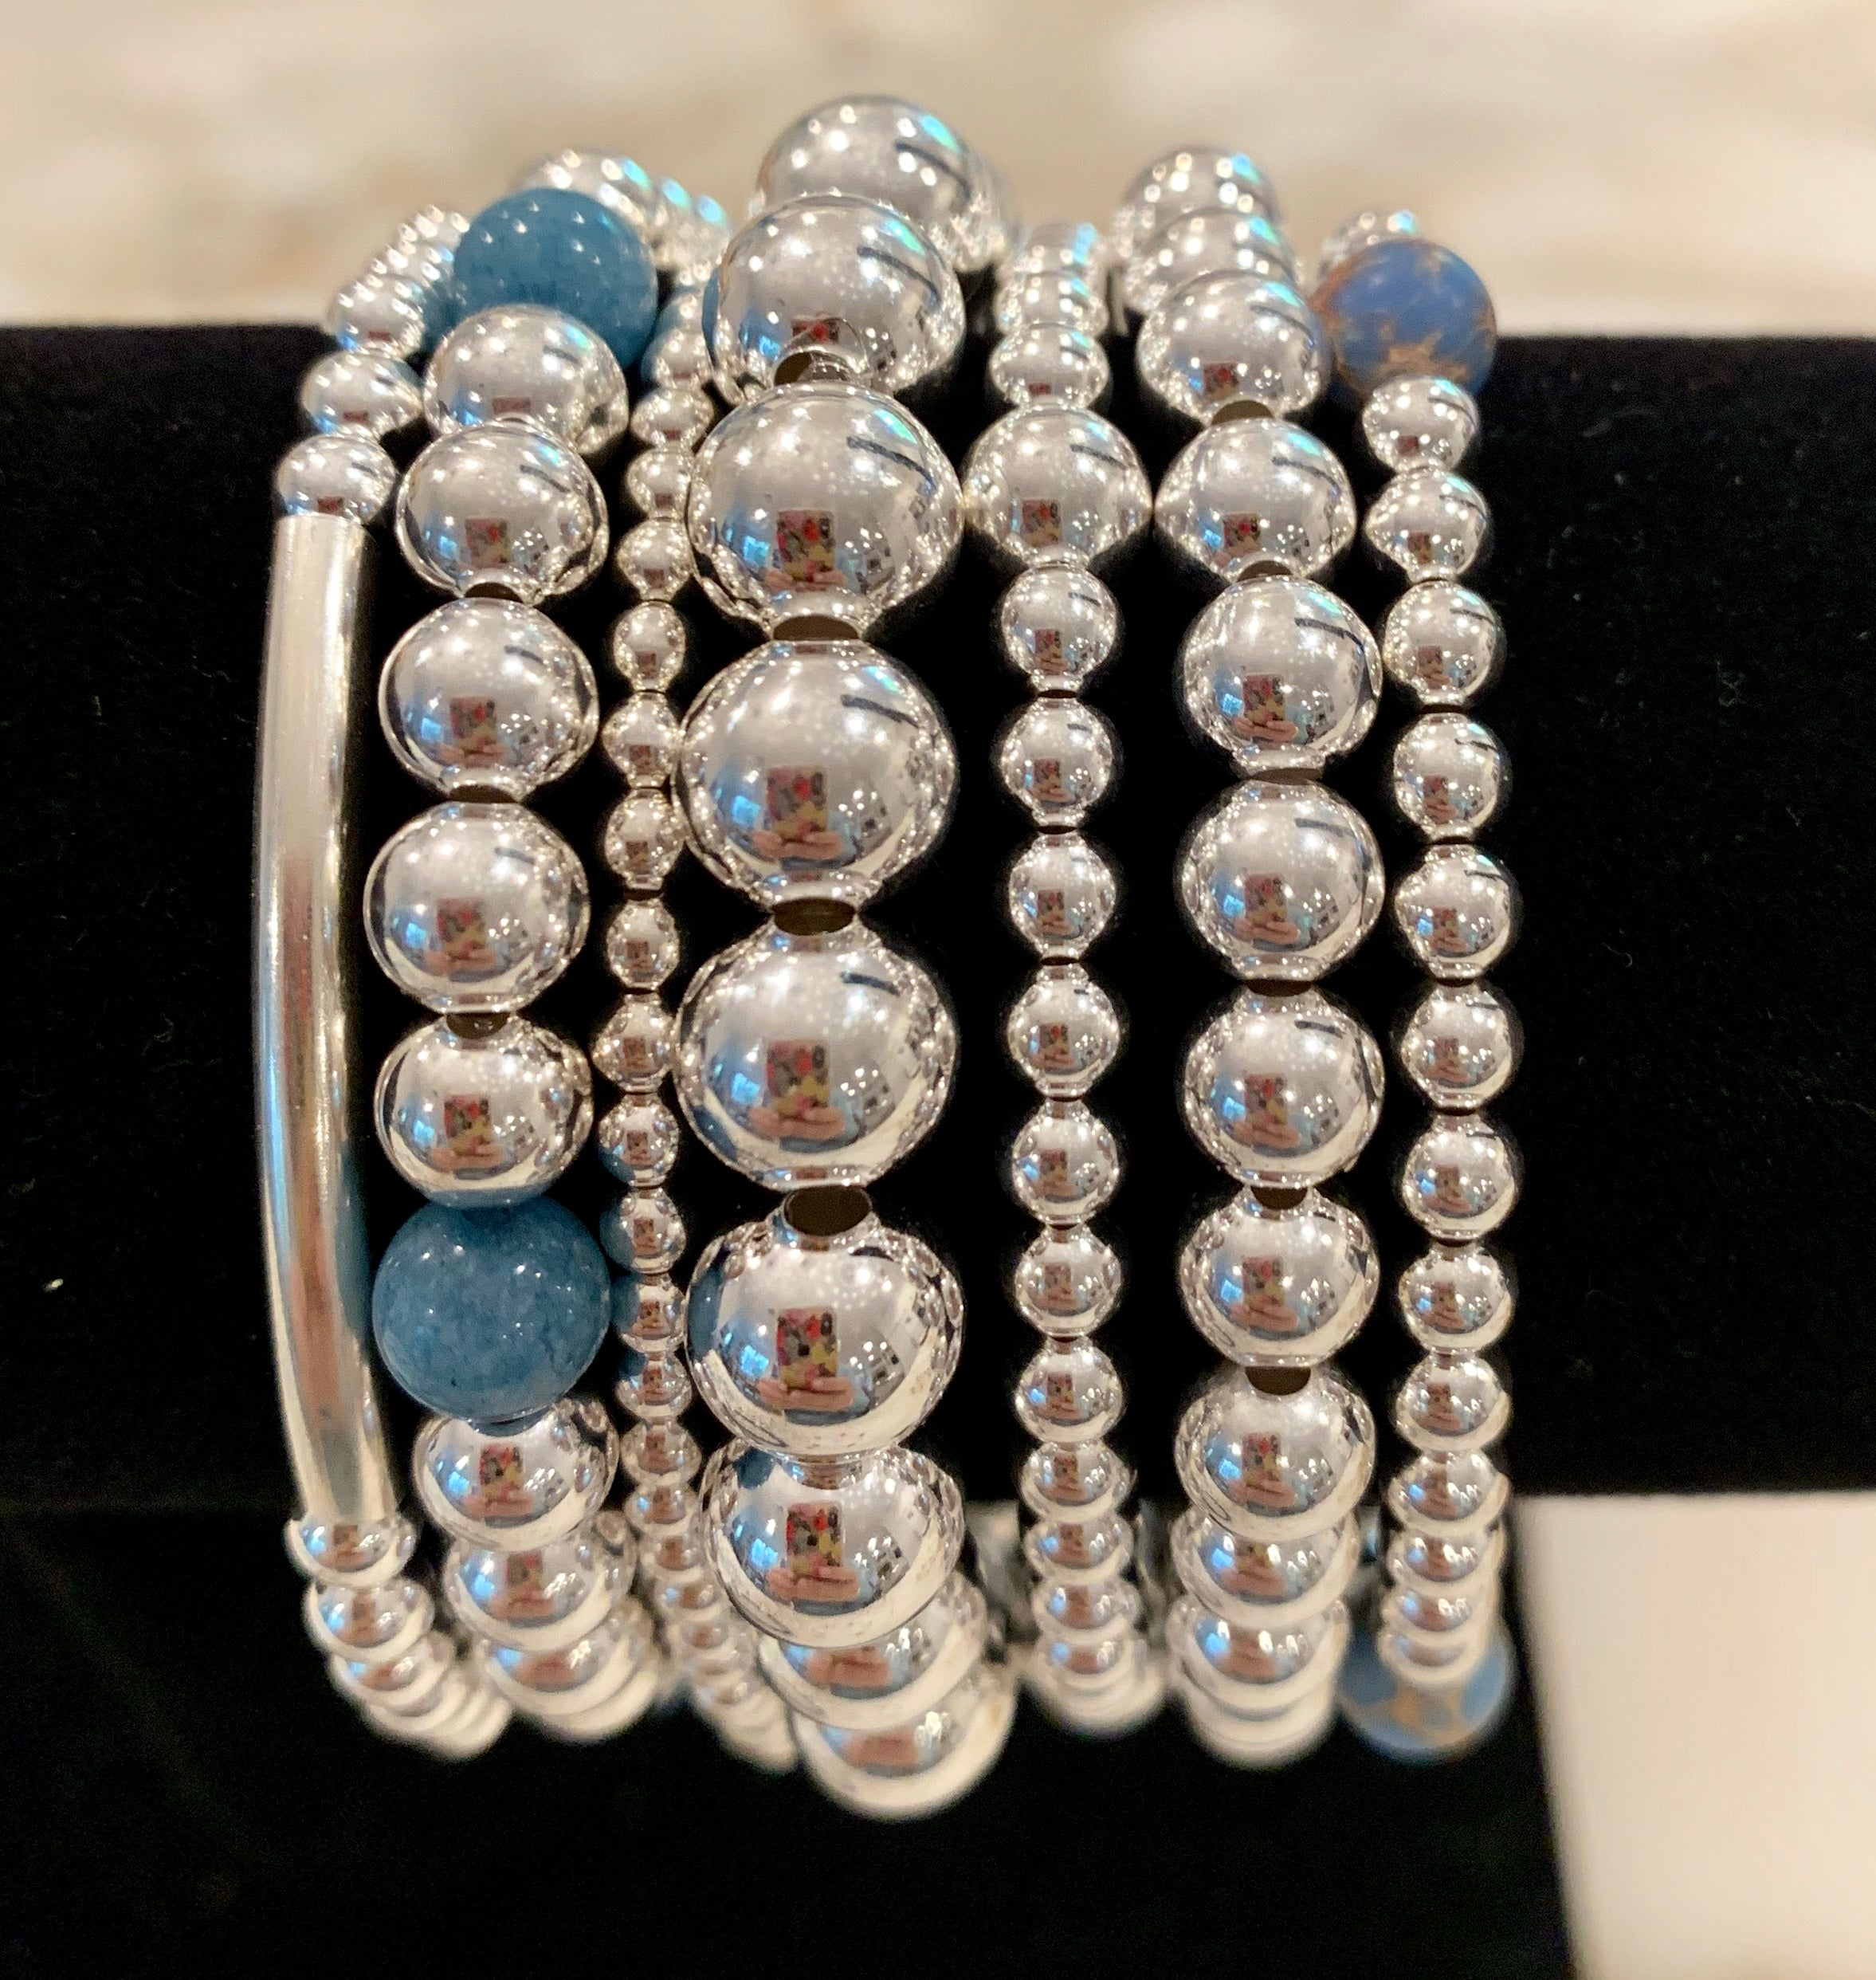 CALLIE 7 Piece Sterling Silver Bead Bracelet Stack with Pale Blue Jade and Japser Stones